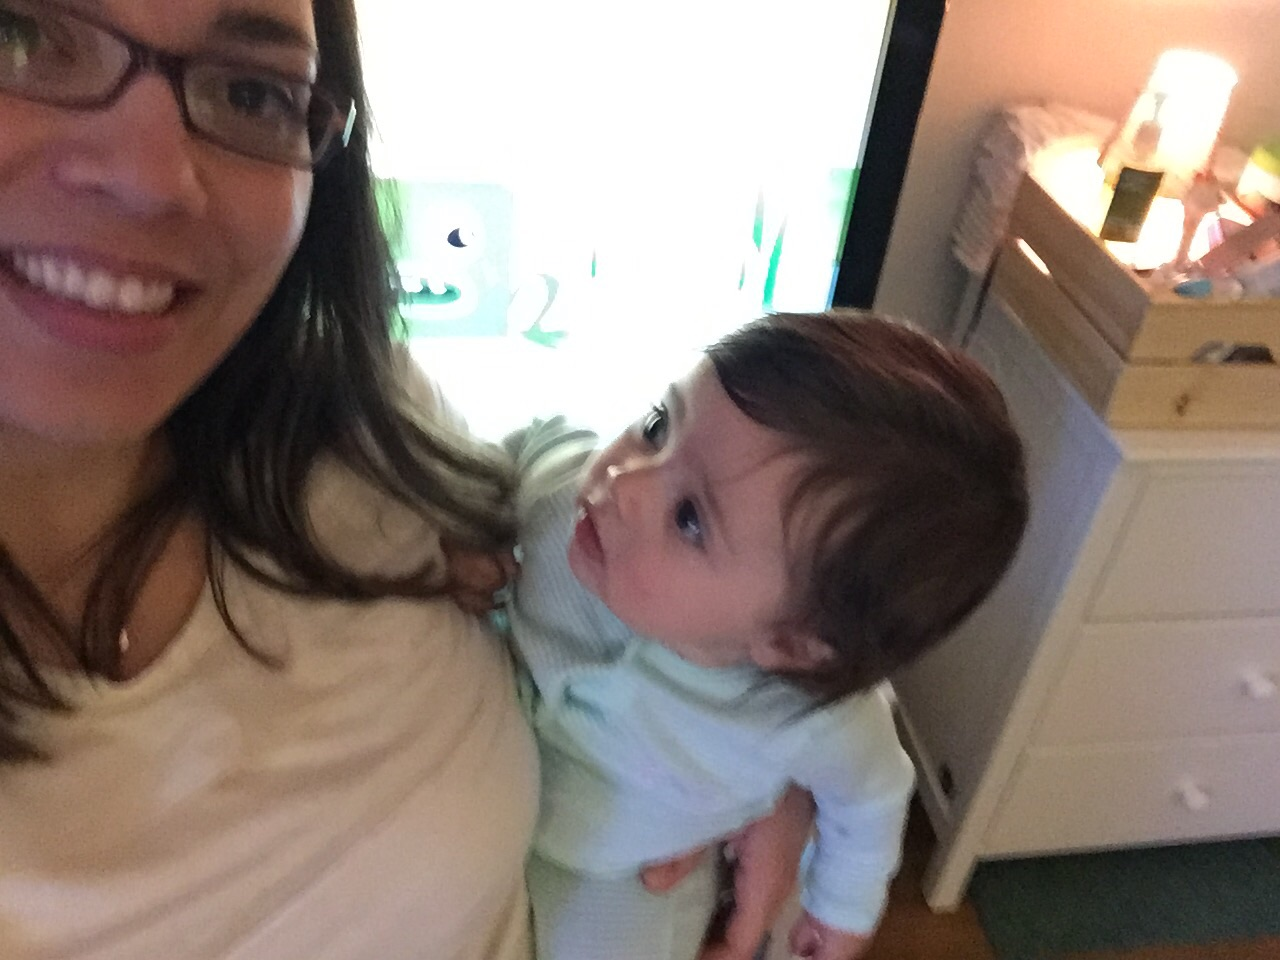 """Drea babysitting Elle, who's thinking, """"Hey, you're not my mommy..."""" So thankful for our friends who have partnered up with us on a babysitting rotation so that we can swap out watching each other's kiddos and make time for date nights with our spouses."""